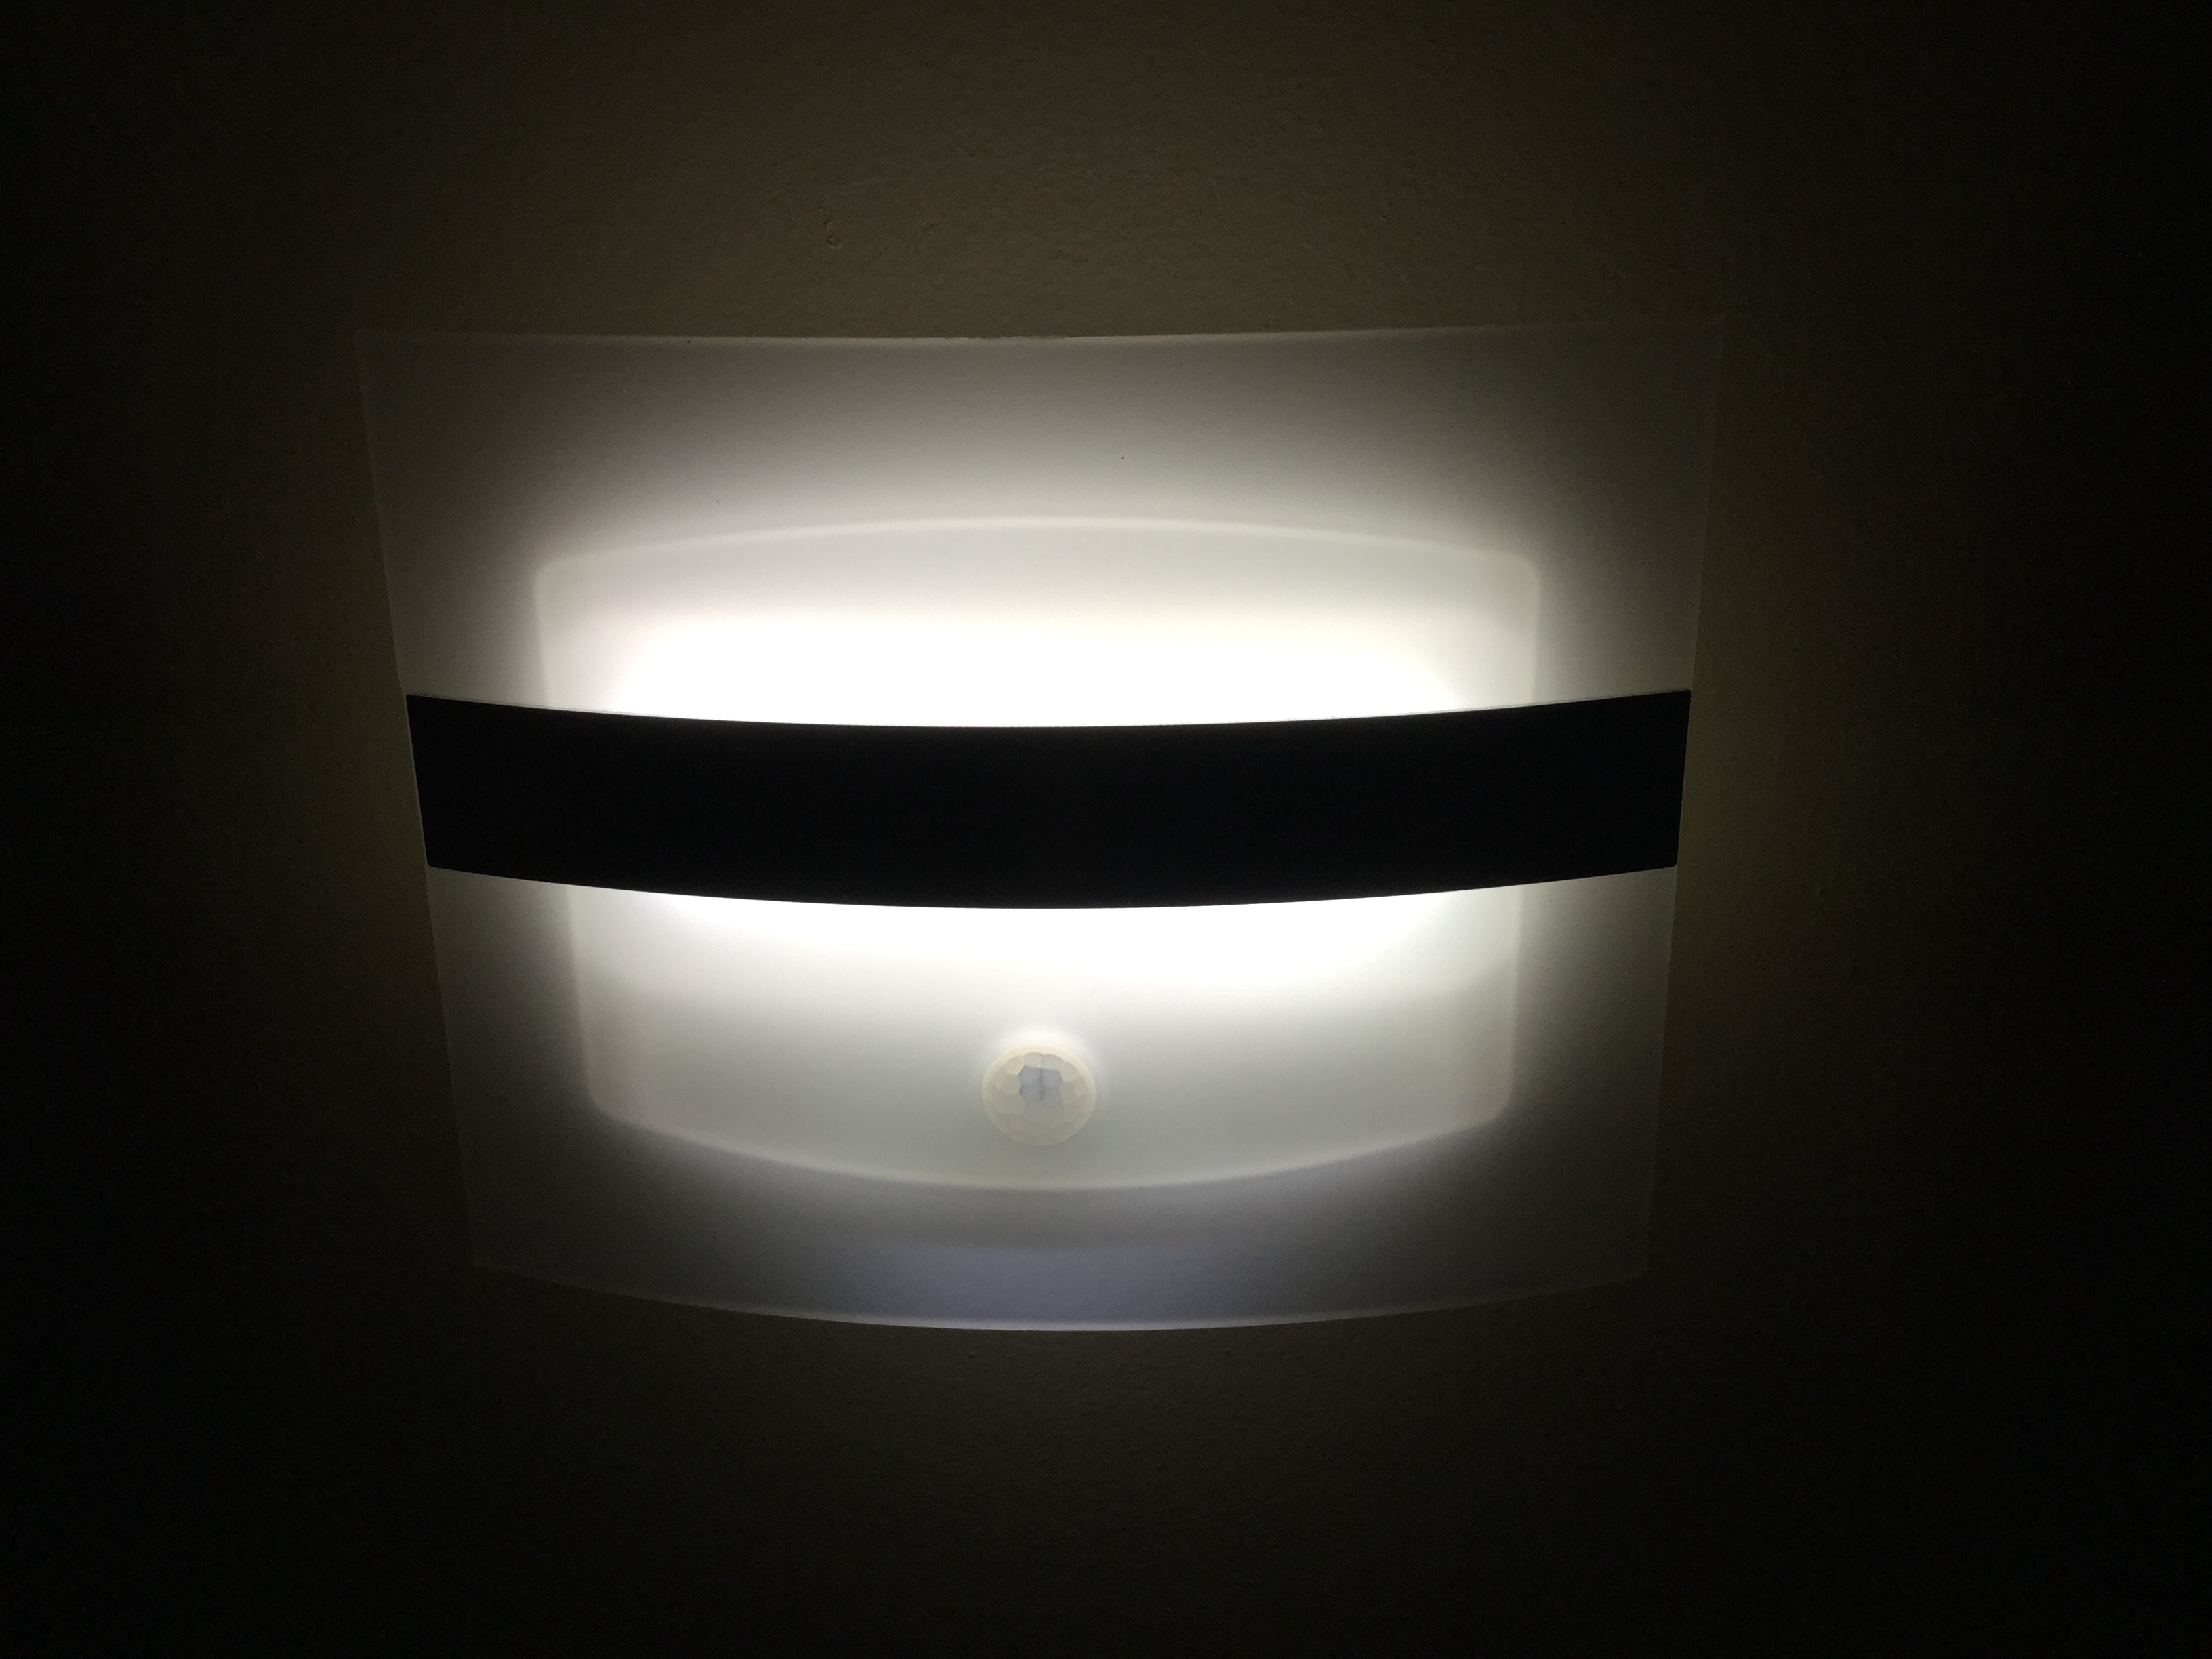 Wall Sconce Night Light : LED Night Lights, Stoog Rechargeable LED Wall Sconce Night Light reviews in Home Decor ...